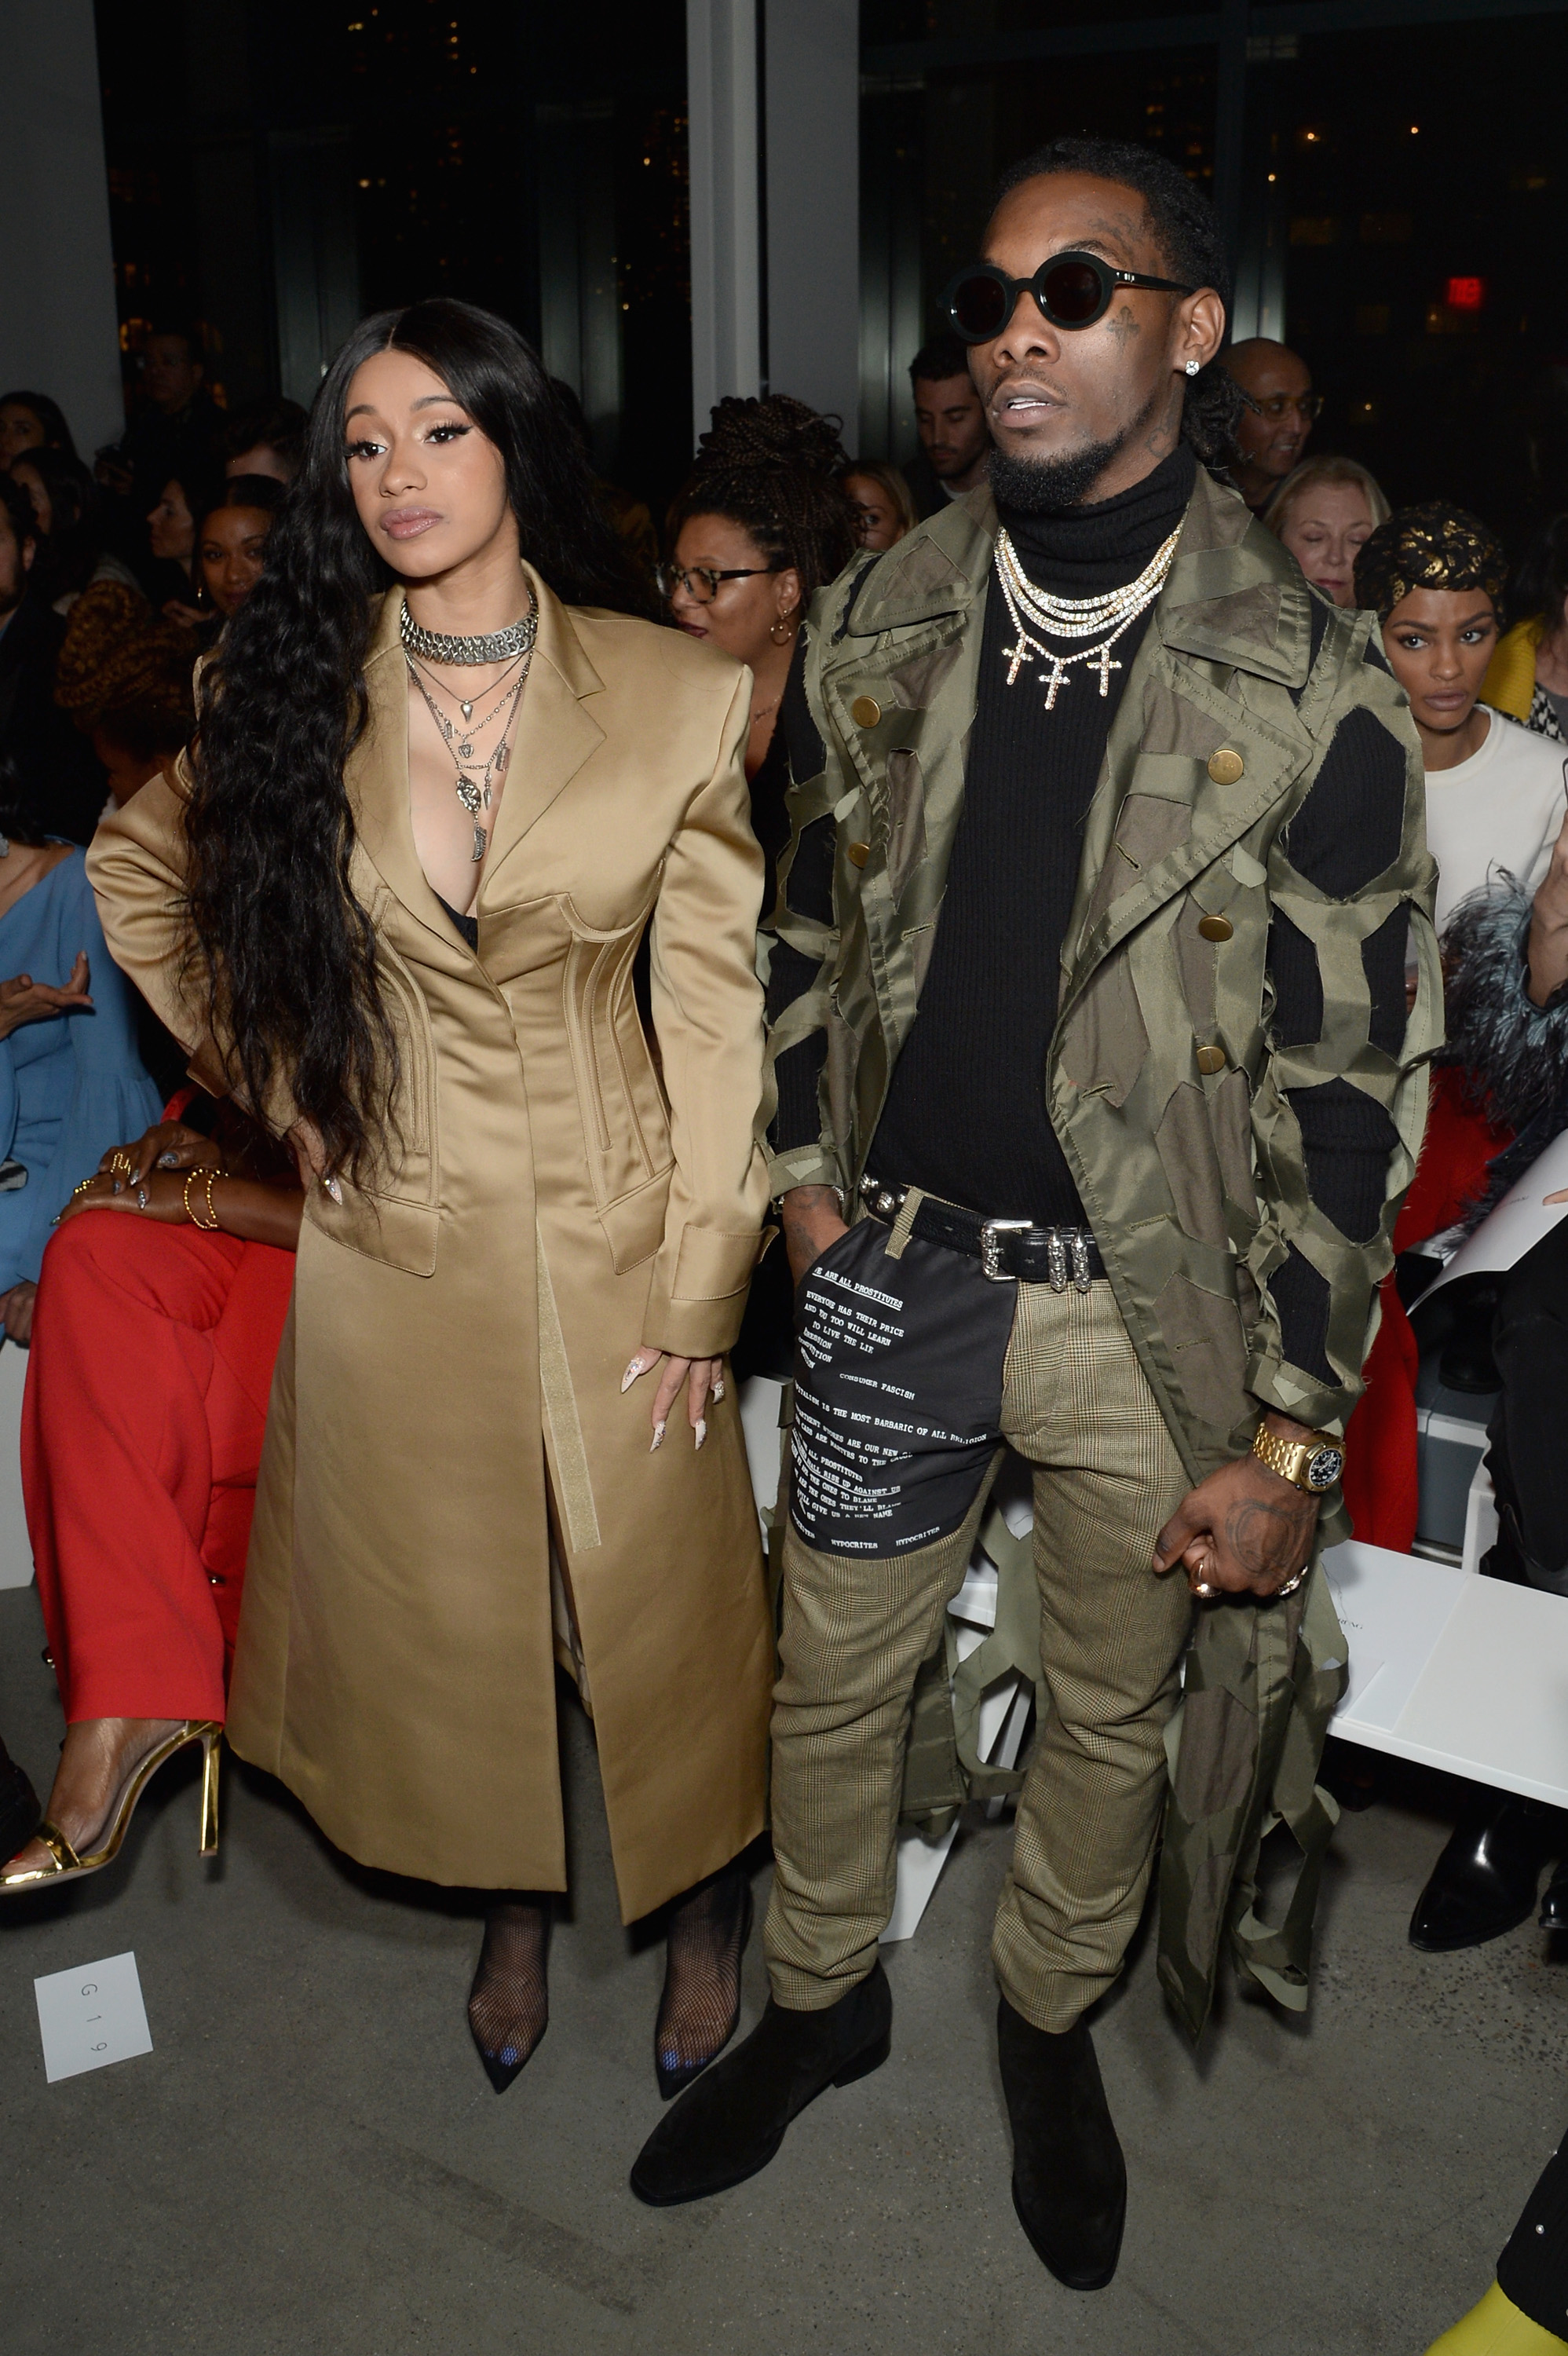 Trouble in paradise? Things don't seem to be going too well in Cardi B and Offset's marriage. (Photo Credit: Getty Images)